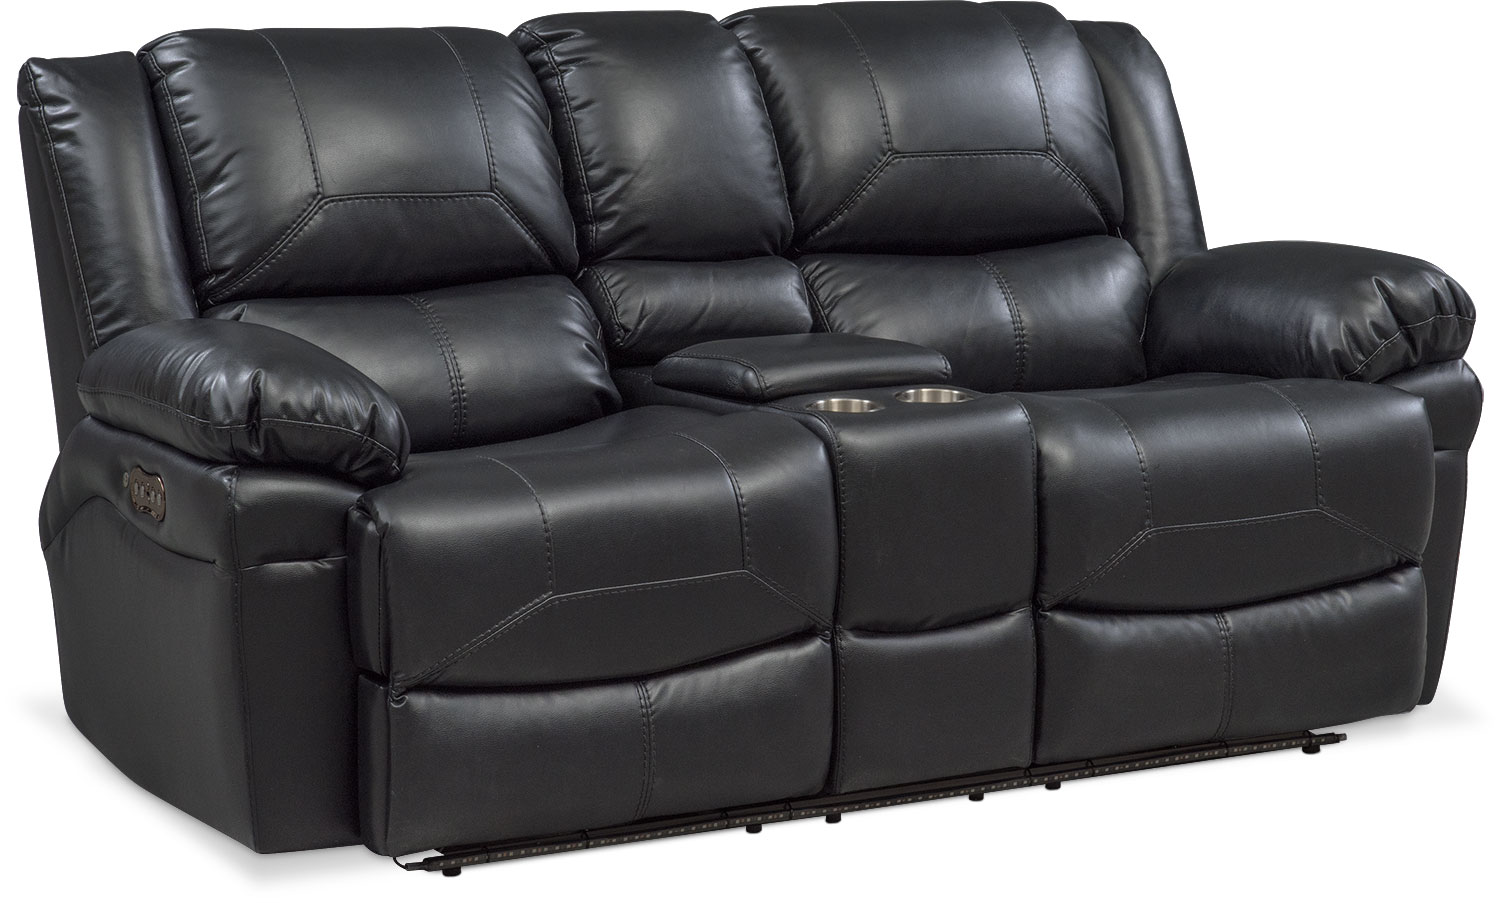 Monza Dual Power Reclining Loveseat With Console Black